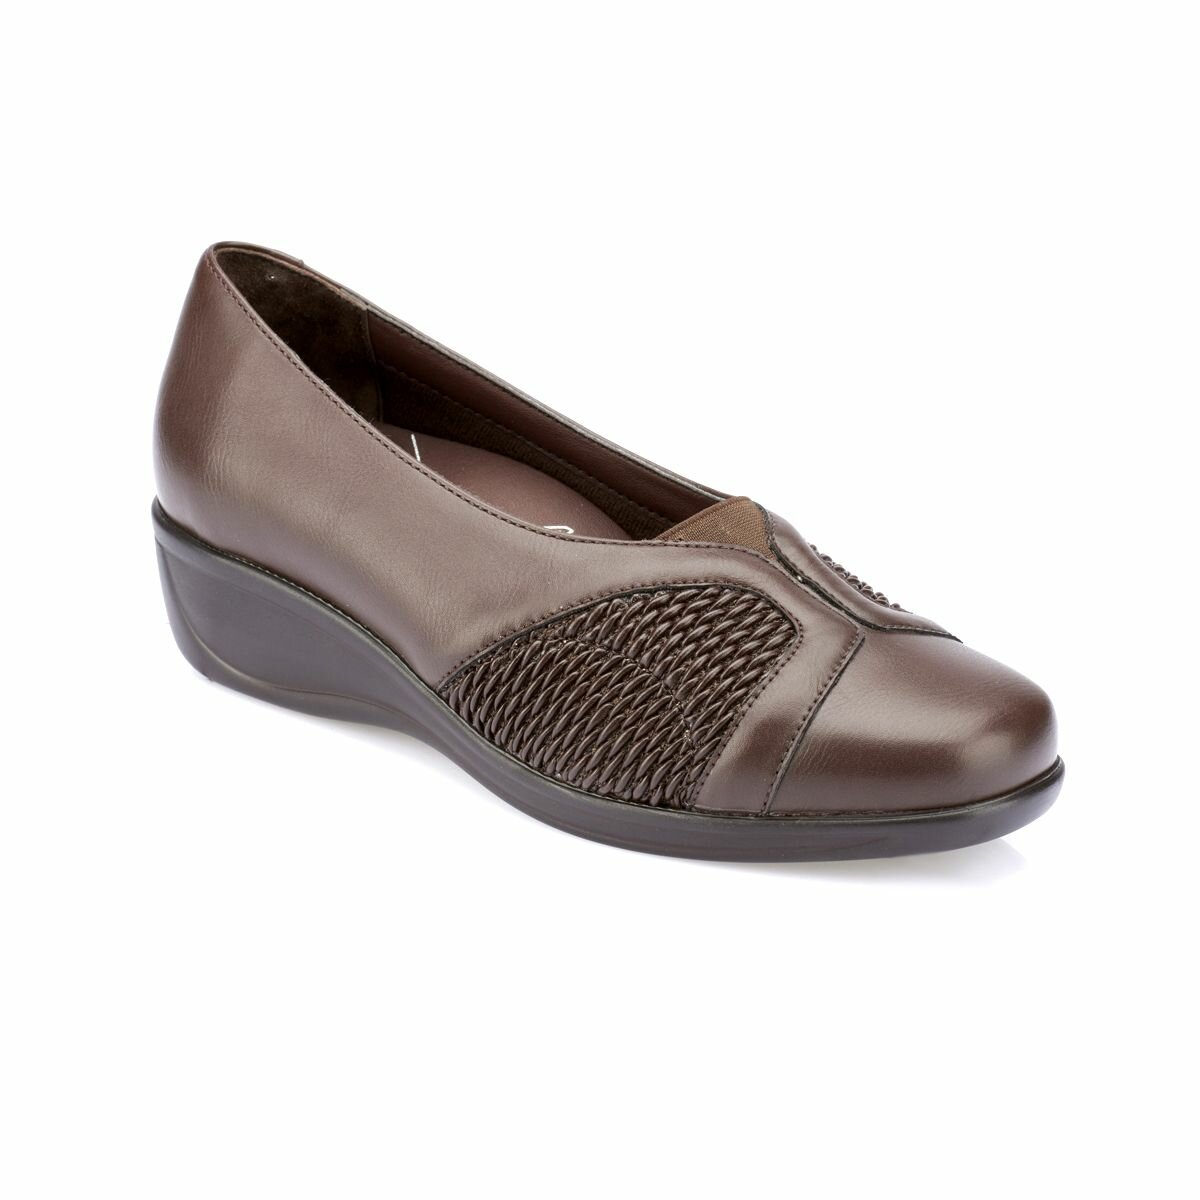 FLO 82. 100164.Z Brown Women 'S Shoes Polaris 5 Point